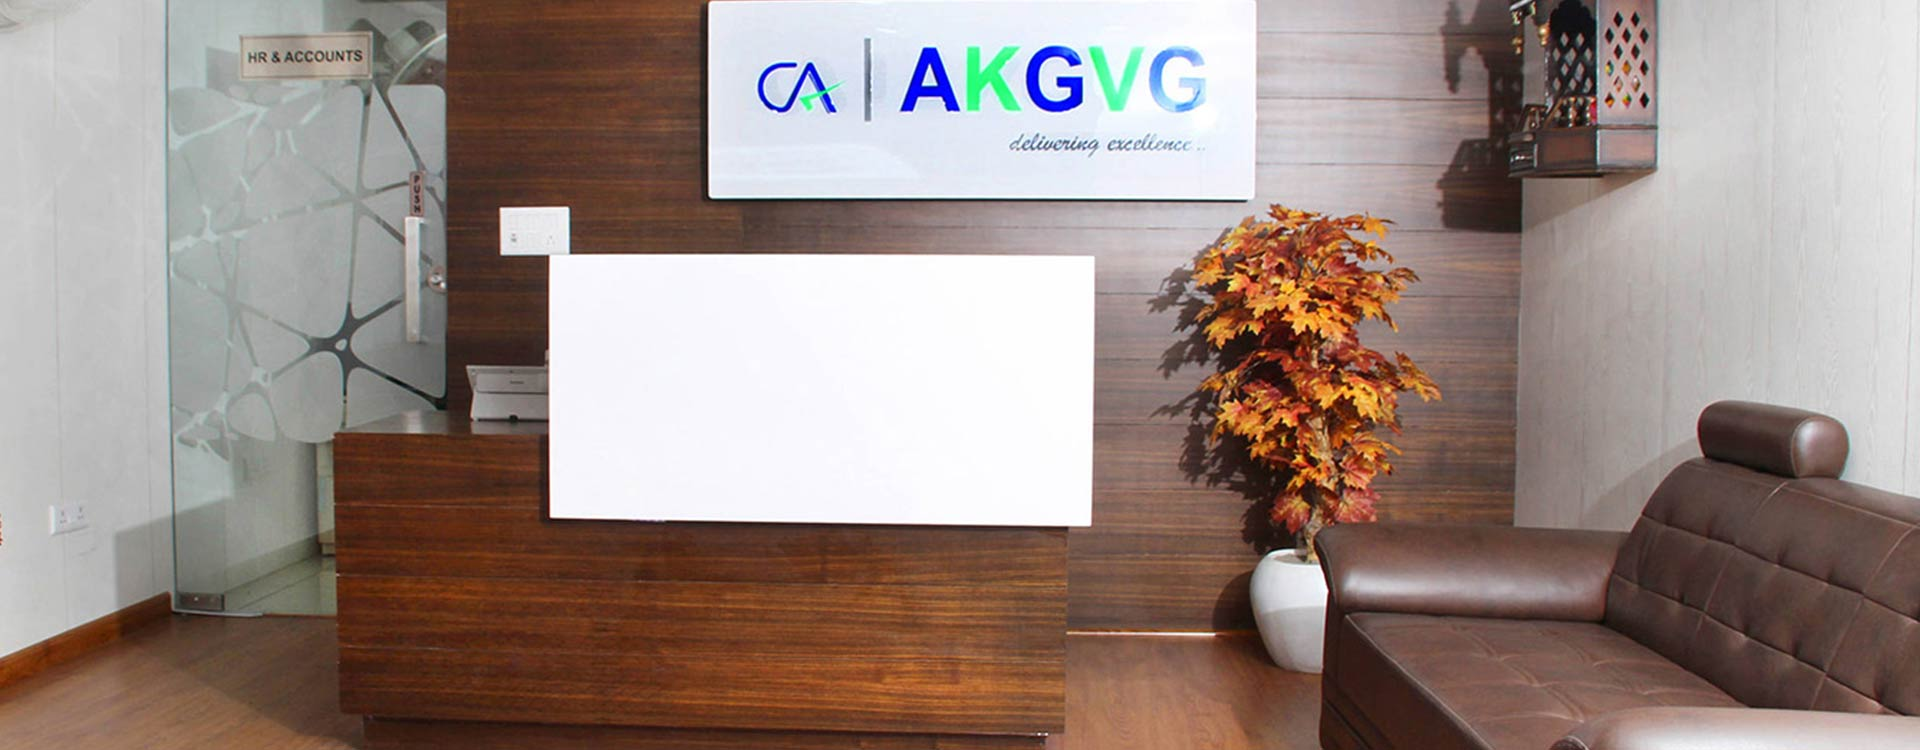 Top Accounting Audit Services and Best CA Firms in Delhi India - AKGVG